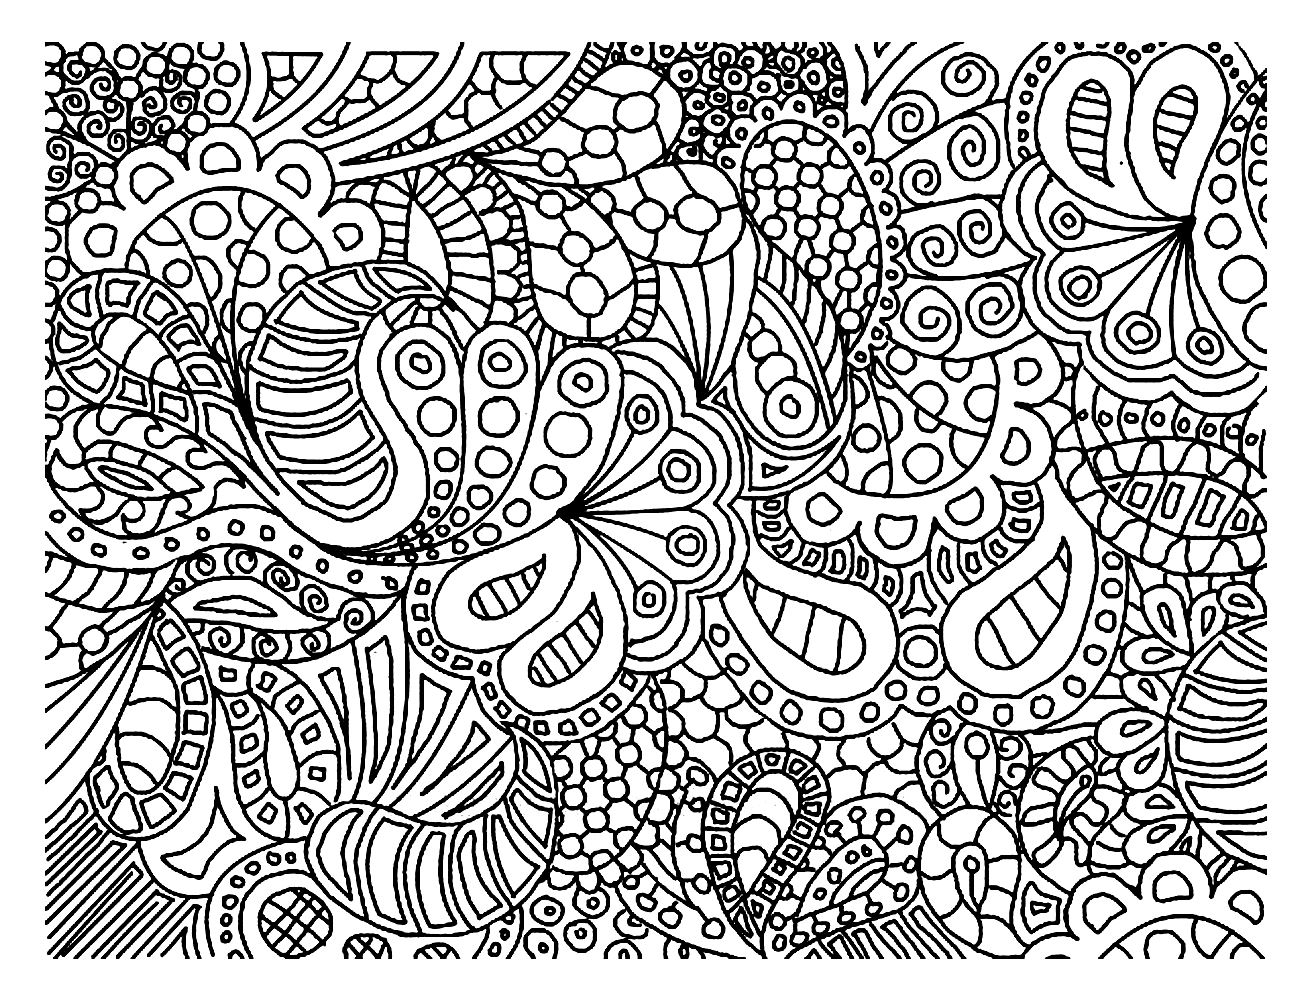 free doodle art to print and color doodle art to print for free doodle art kids coloring pages and art to doodle print free color